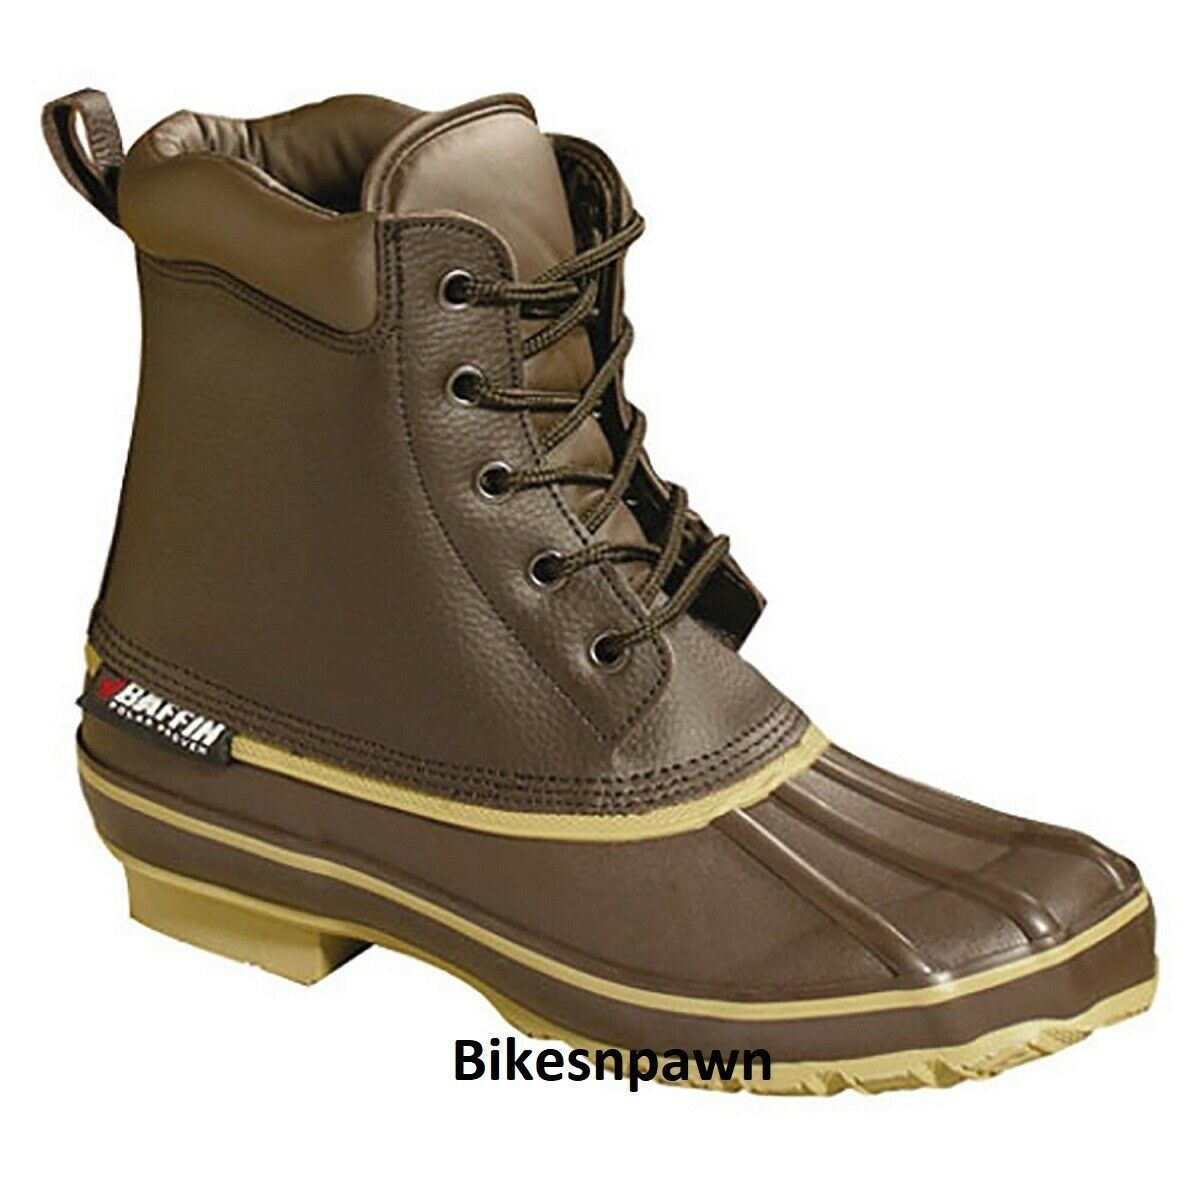 New Mens Size 14 Baffin Moose Waterproof All Season Boots Rated -0 F